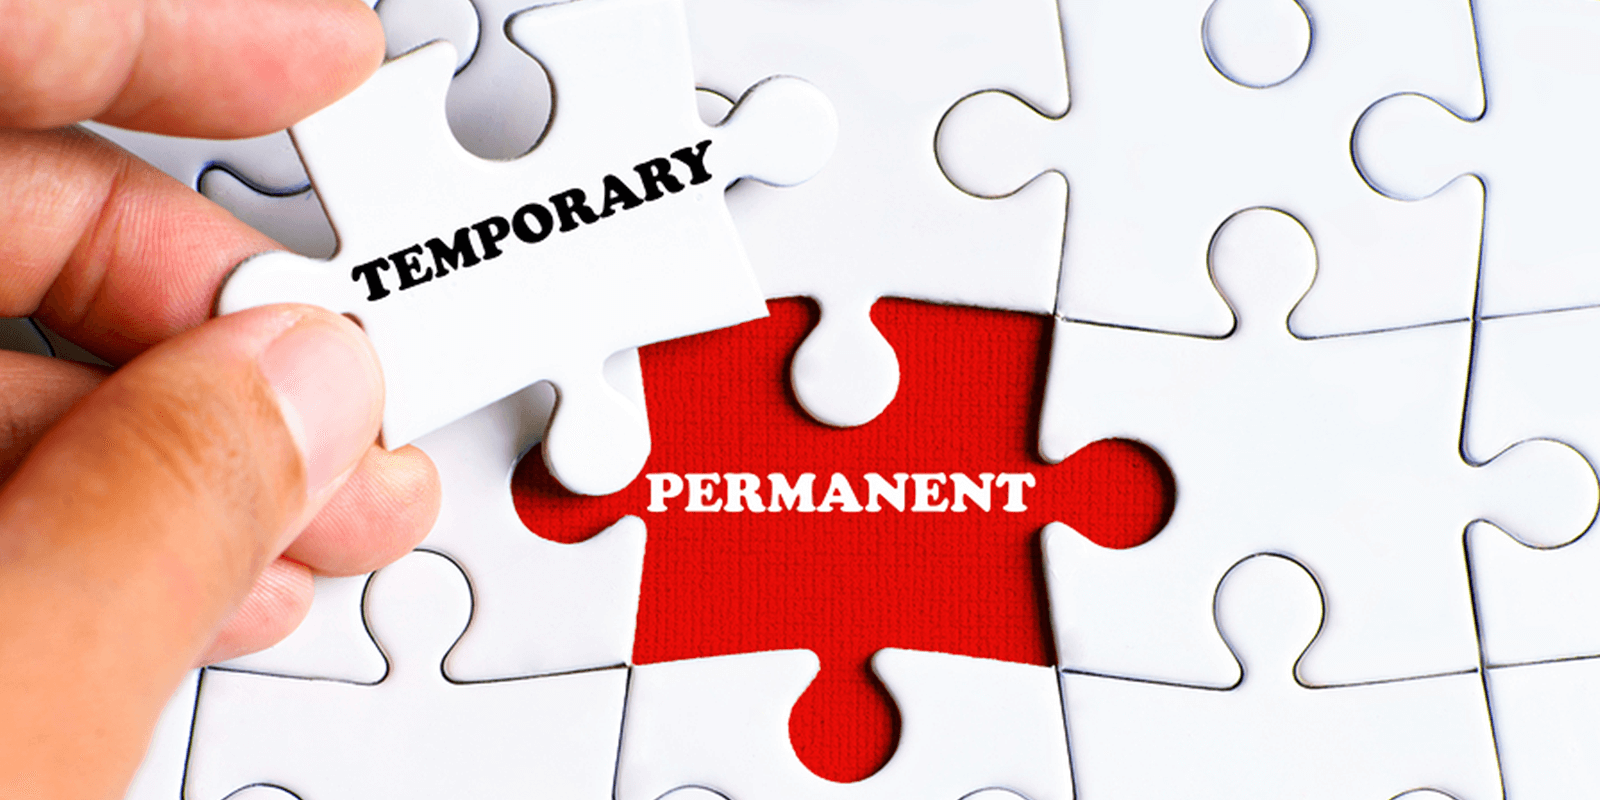 Temporary work: career opportunity or dead end?